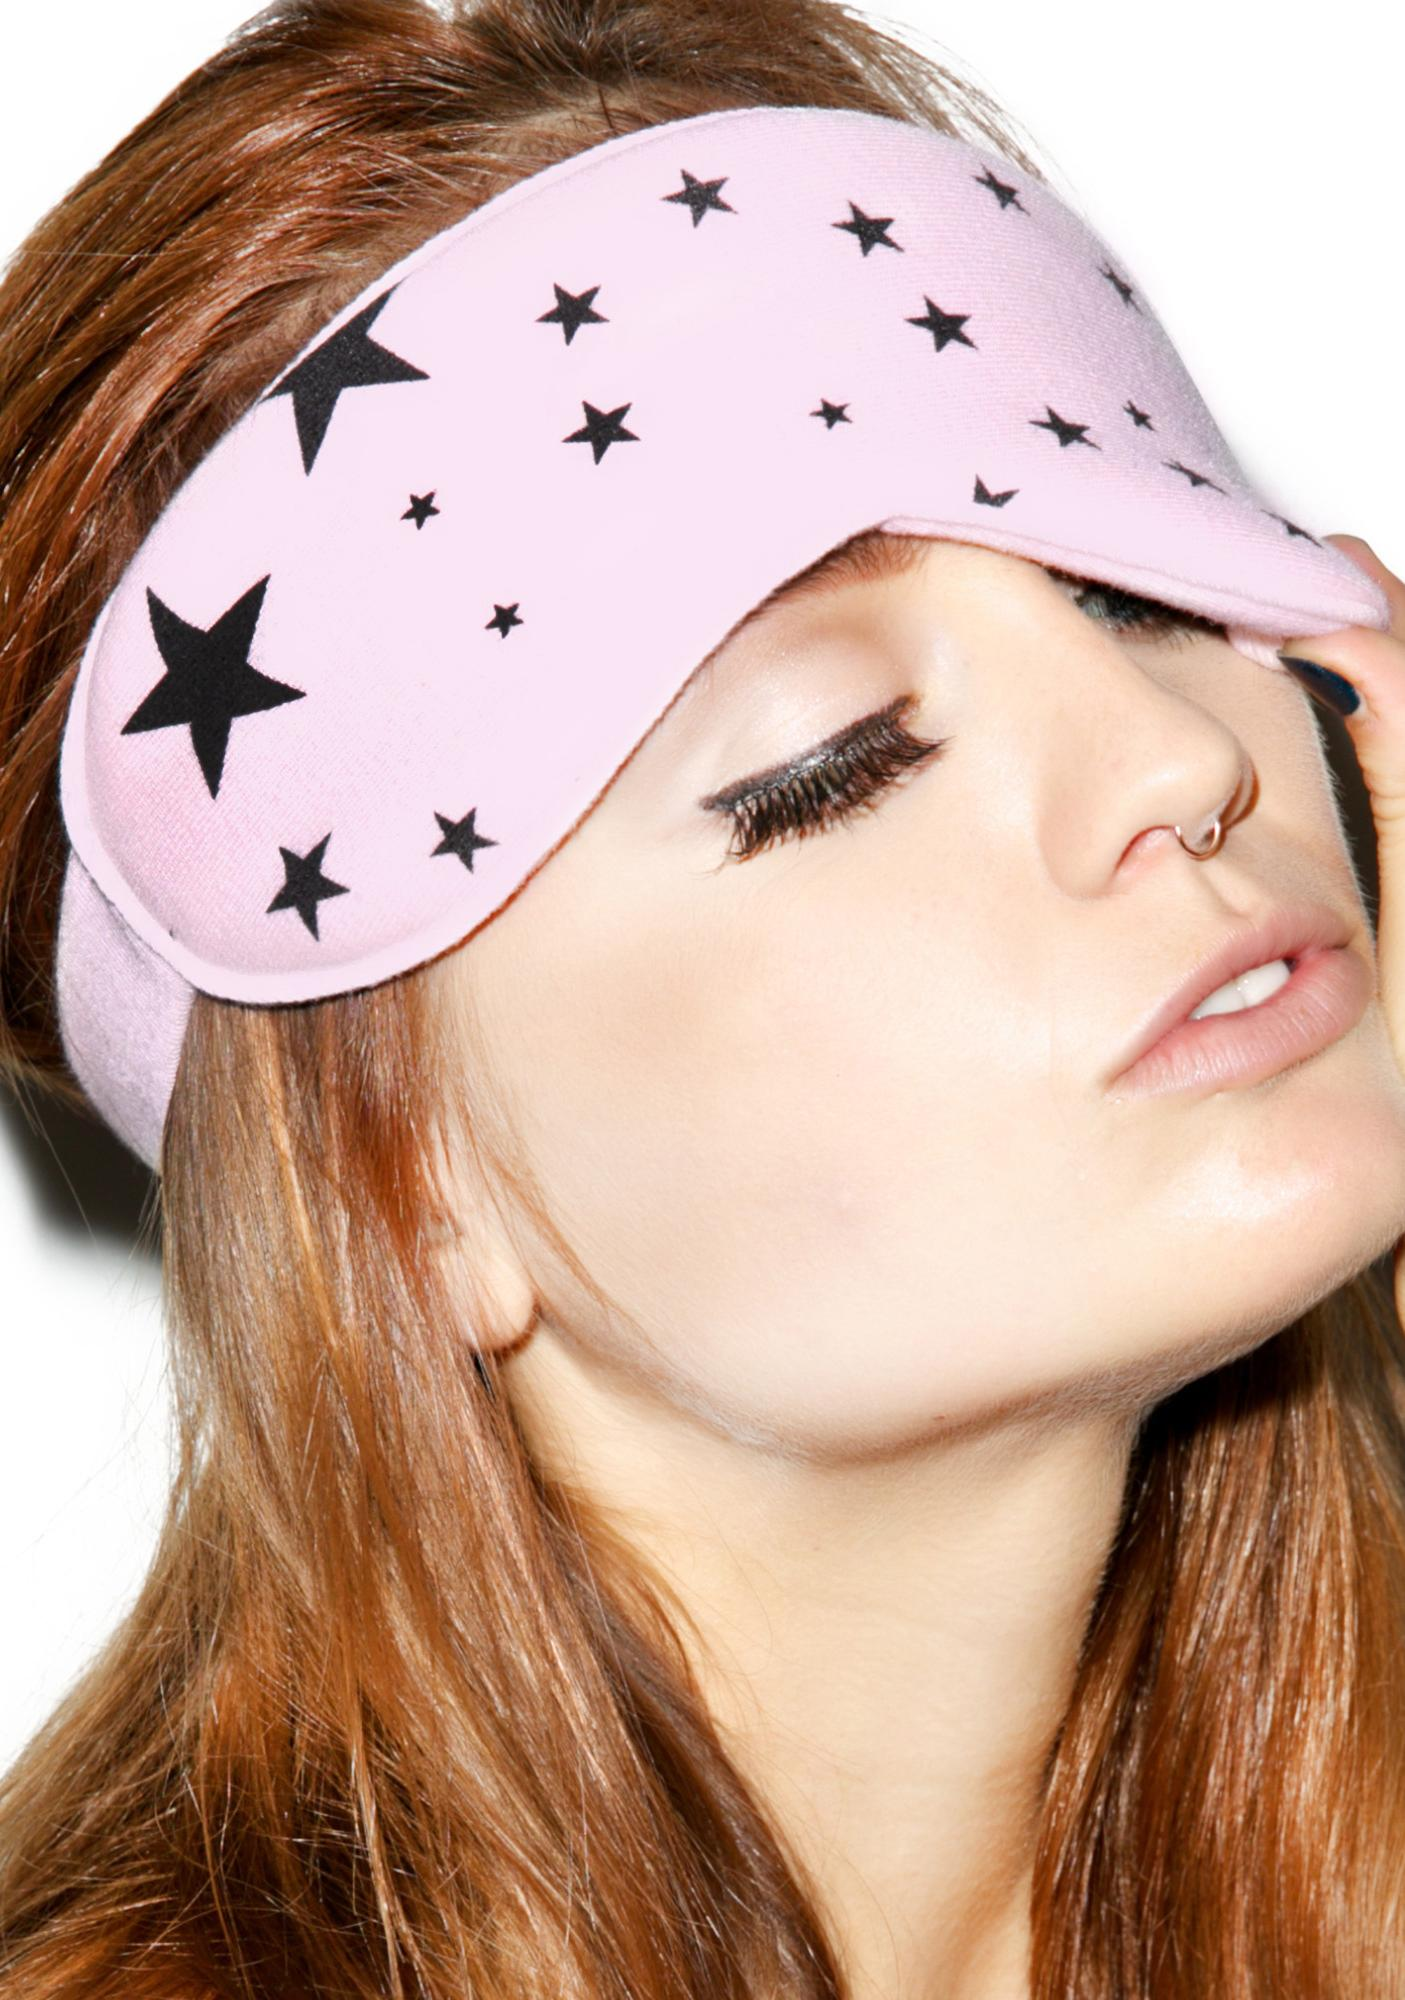 Wildfox Couture Disco Star Eyemask